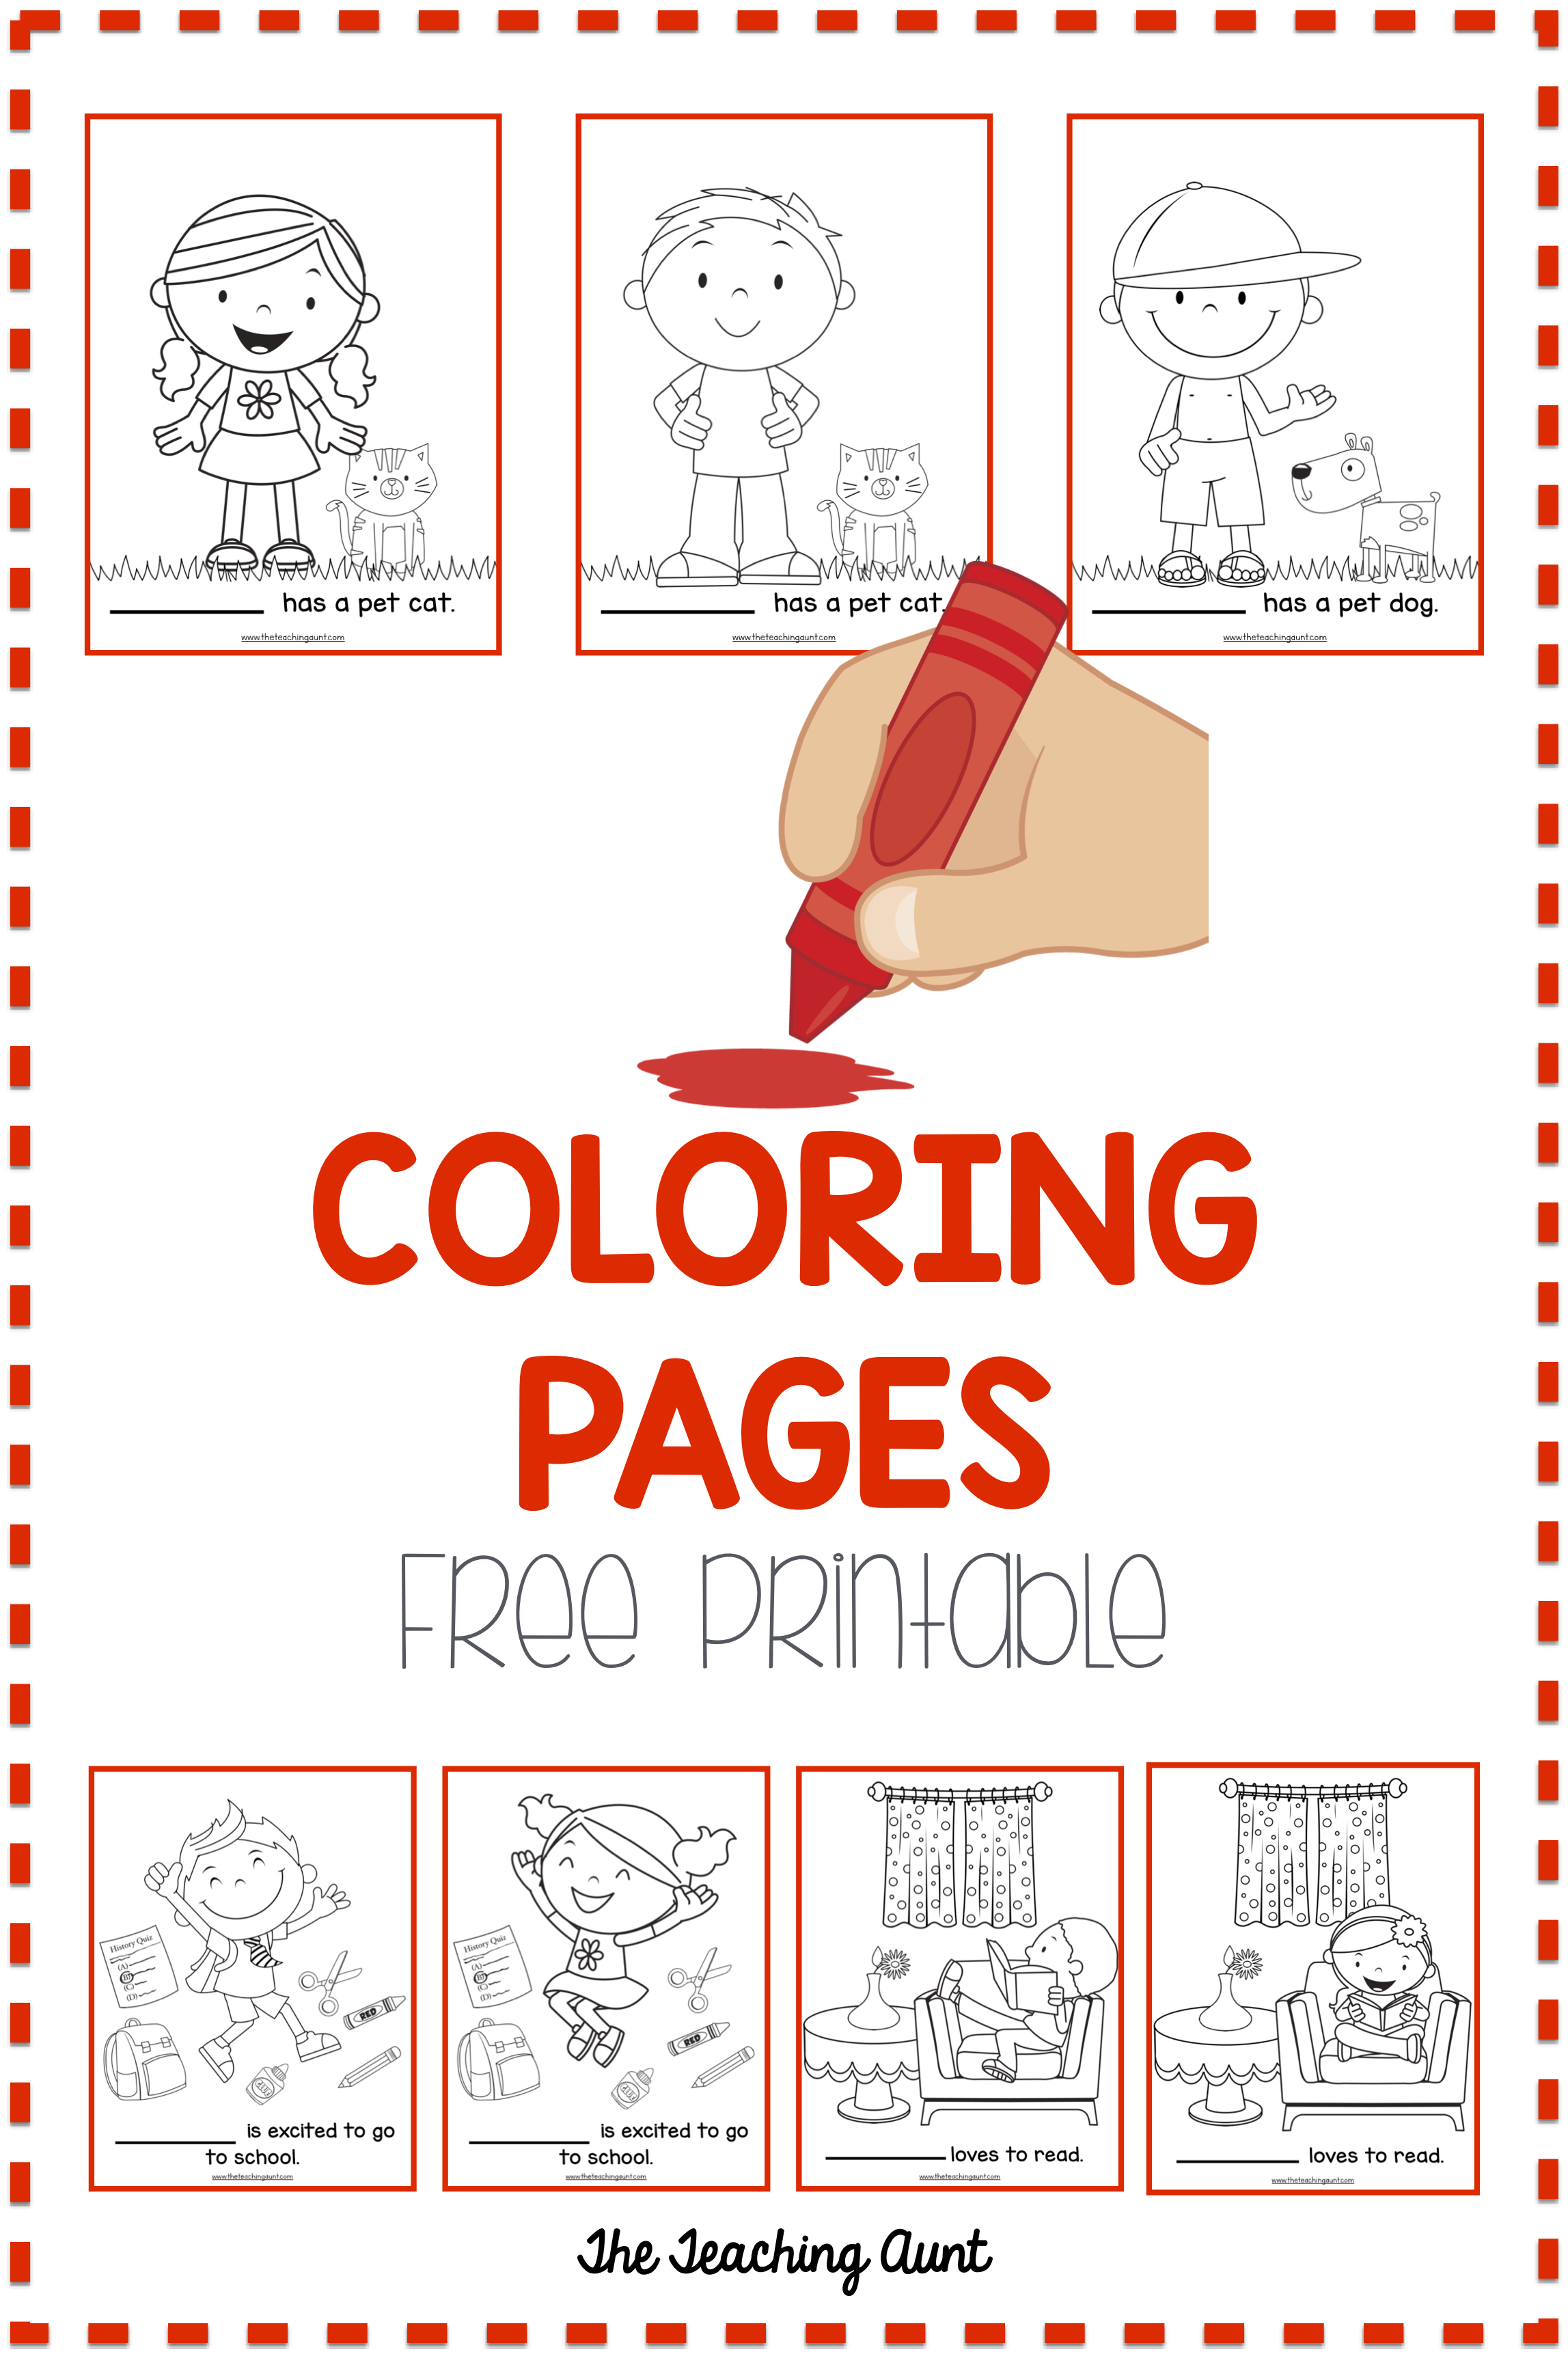 Benefits Of Coloring Activity For Toddlers And